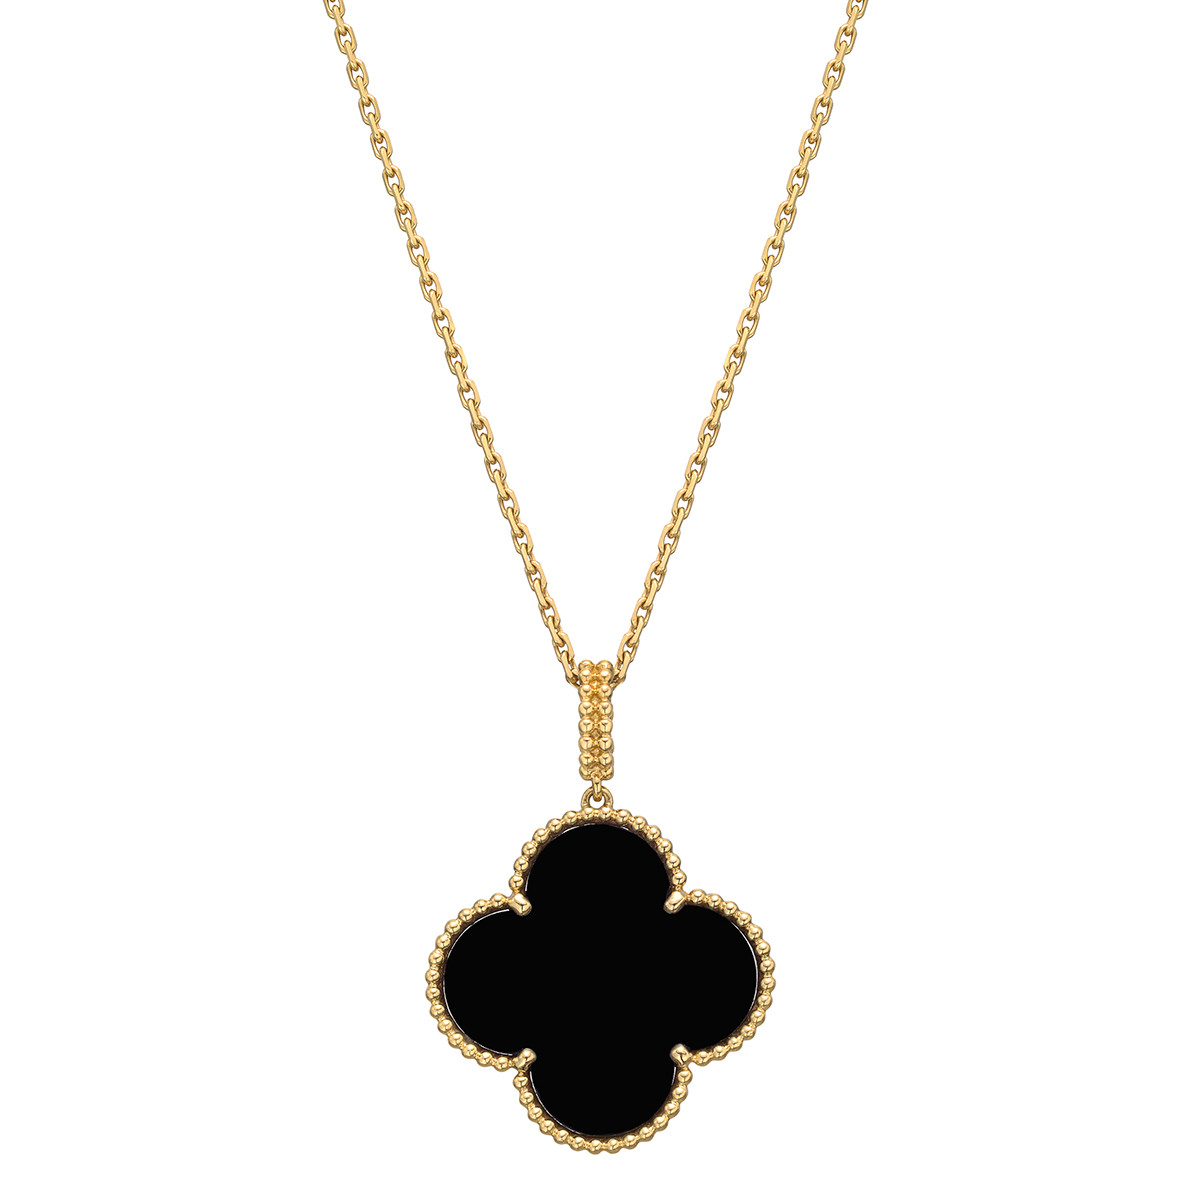 Van cleef arpels black onyx magic alhambra long pendant betteridge magic alhambra large clover shaped black onyx pendant mounted in a delicately beaded 18k yellow gold frame suspended from a 355 long chain necklace in aloadofball Image collections